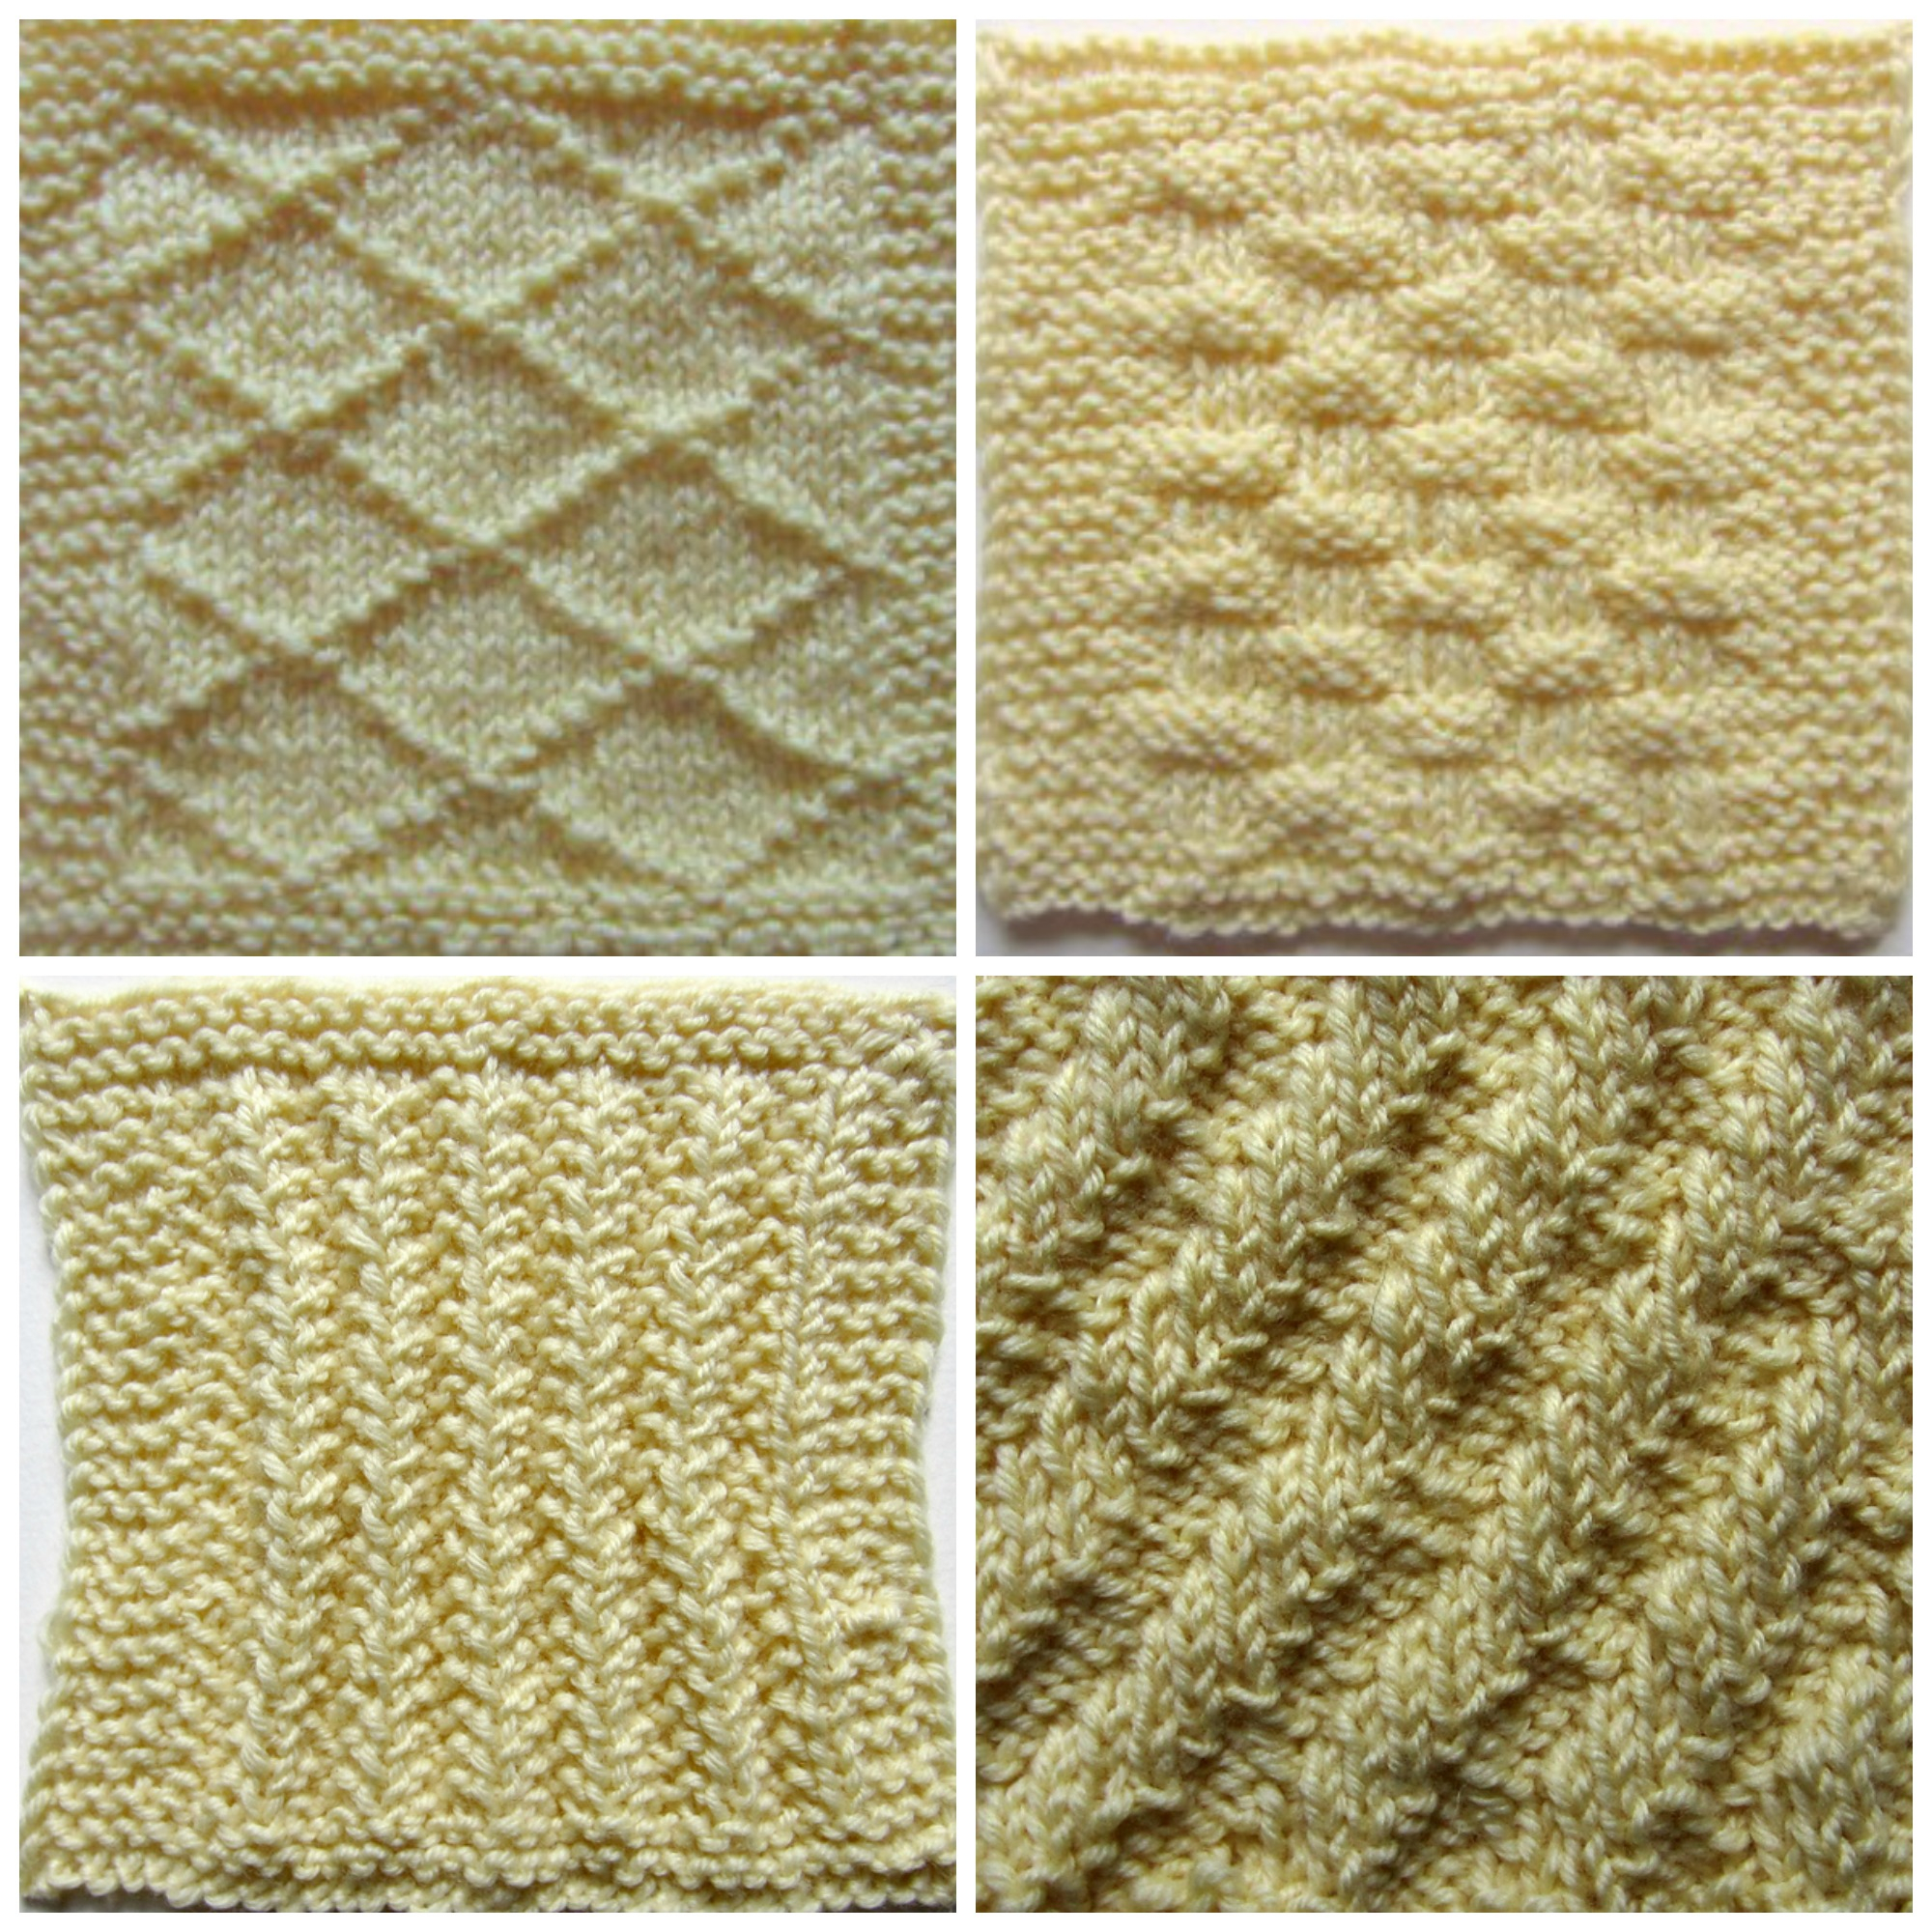 Knitted Squares Patterns Free Knitting Sampler Pillow Part 5 Assembly And Finishing Stitch And